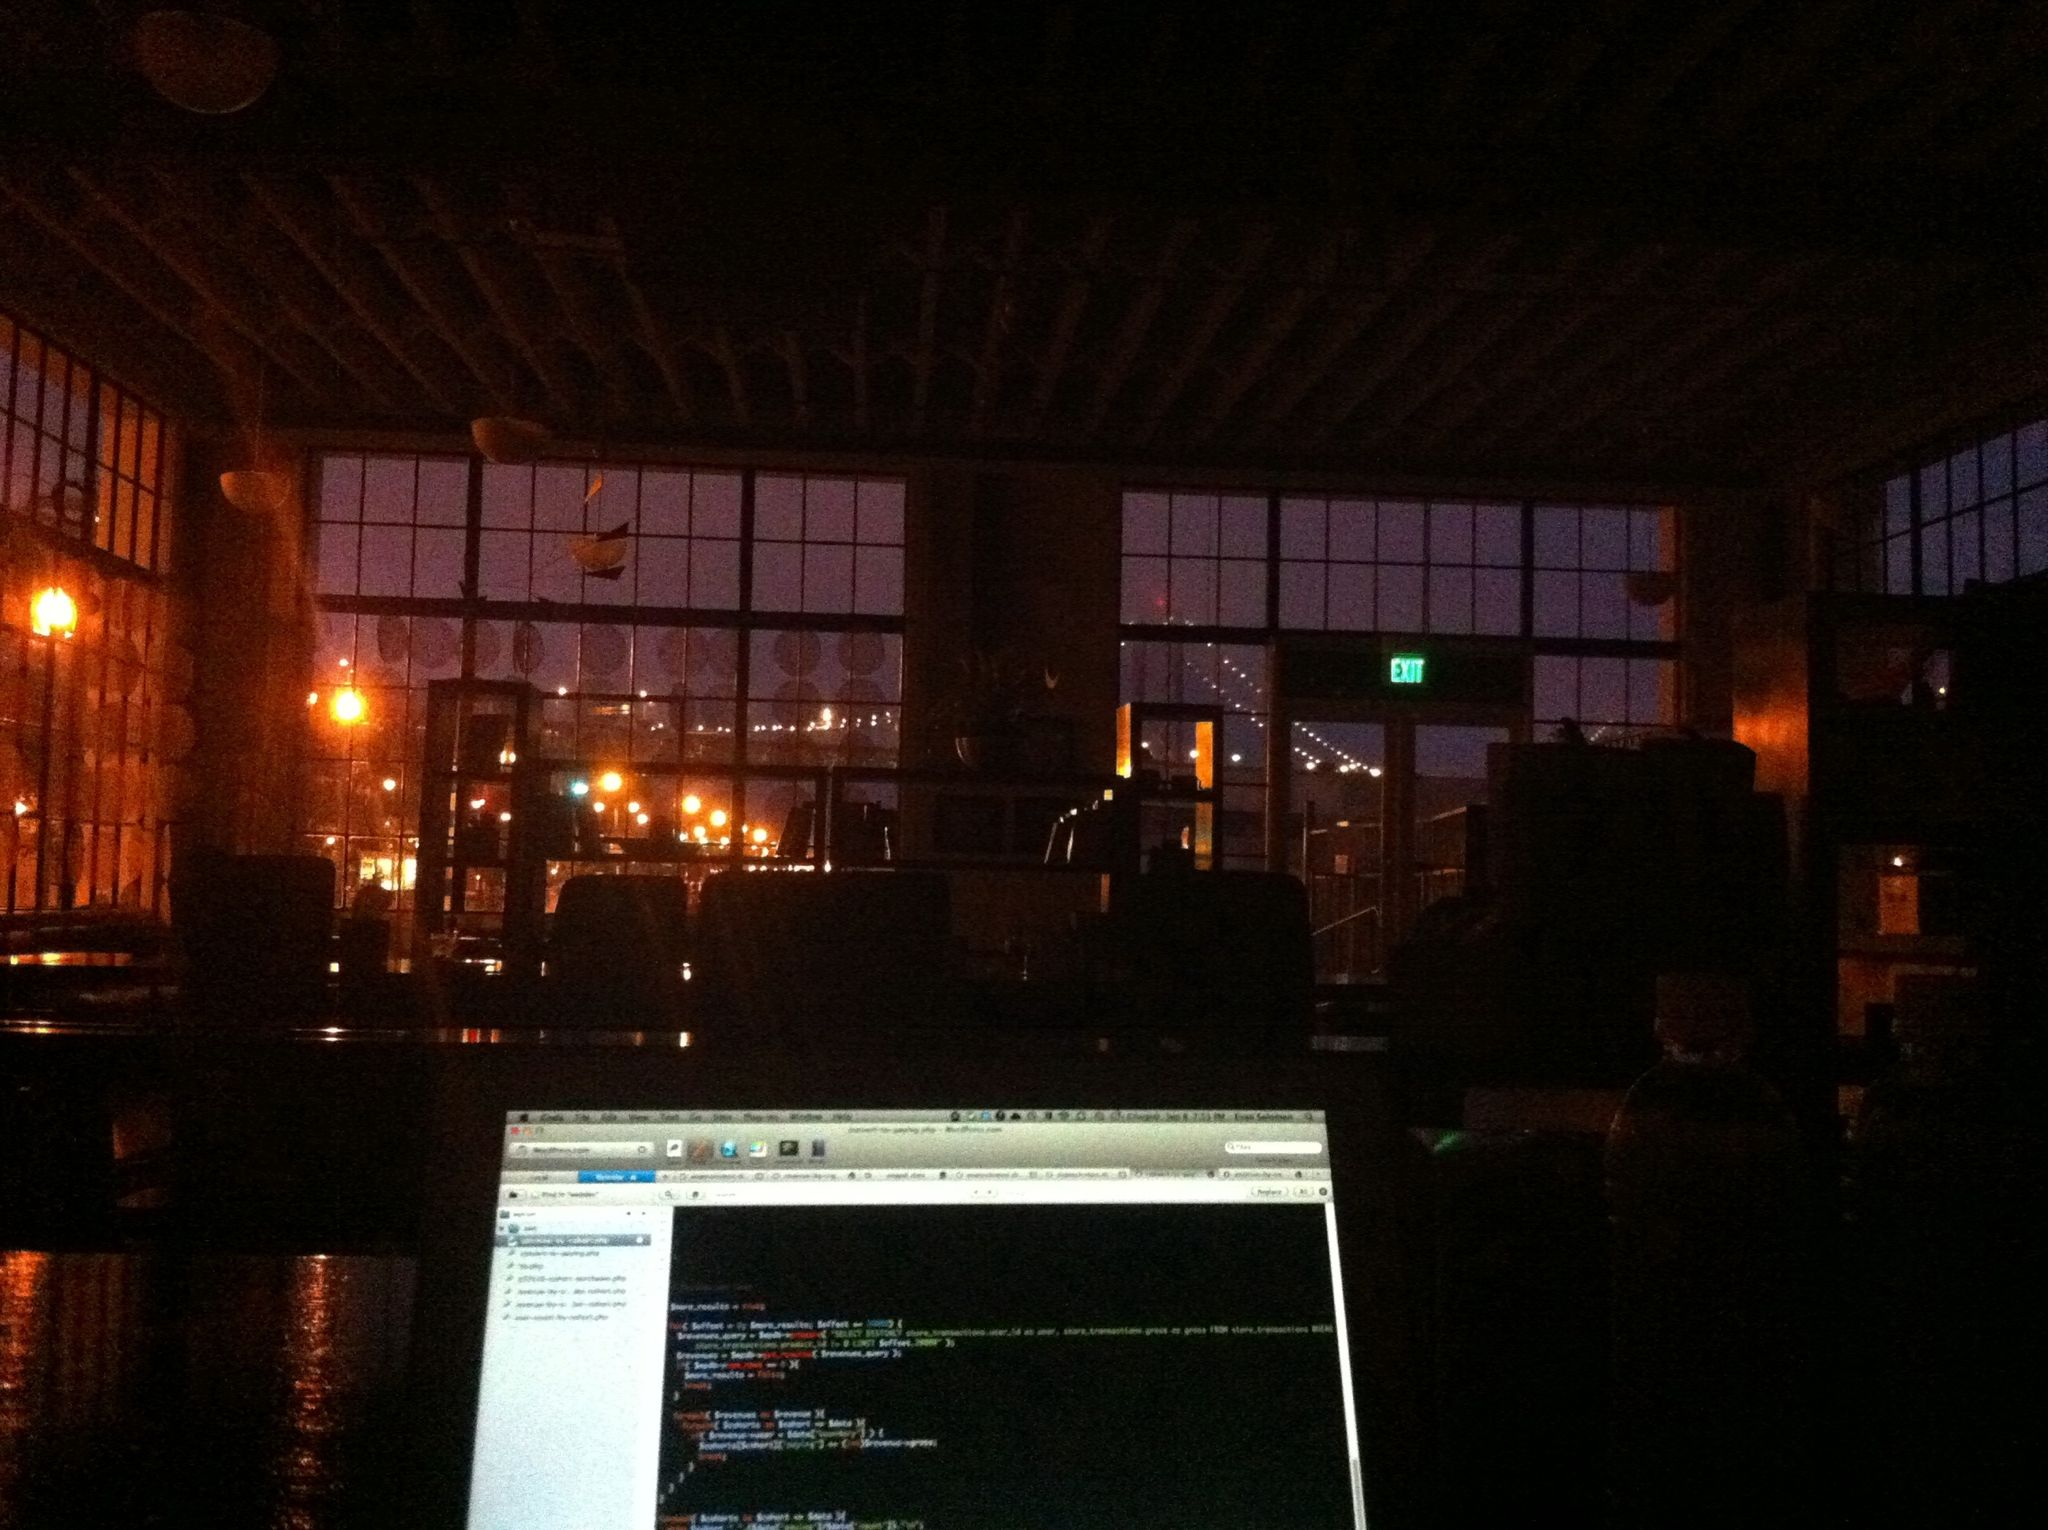 Automattic office inside by night - Evan Solomon